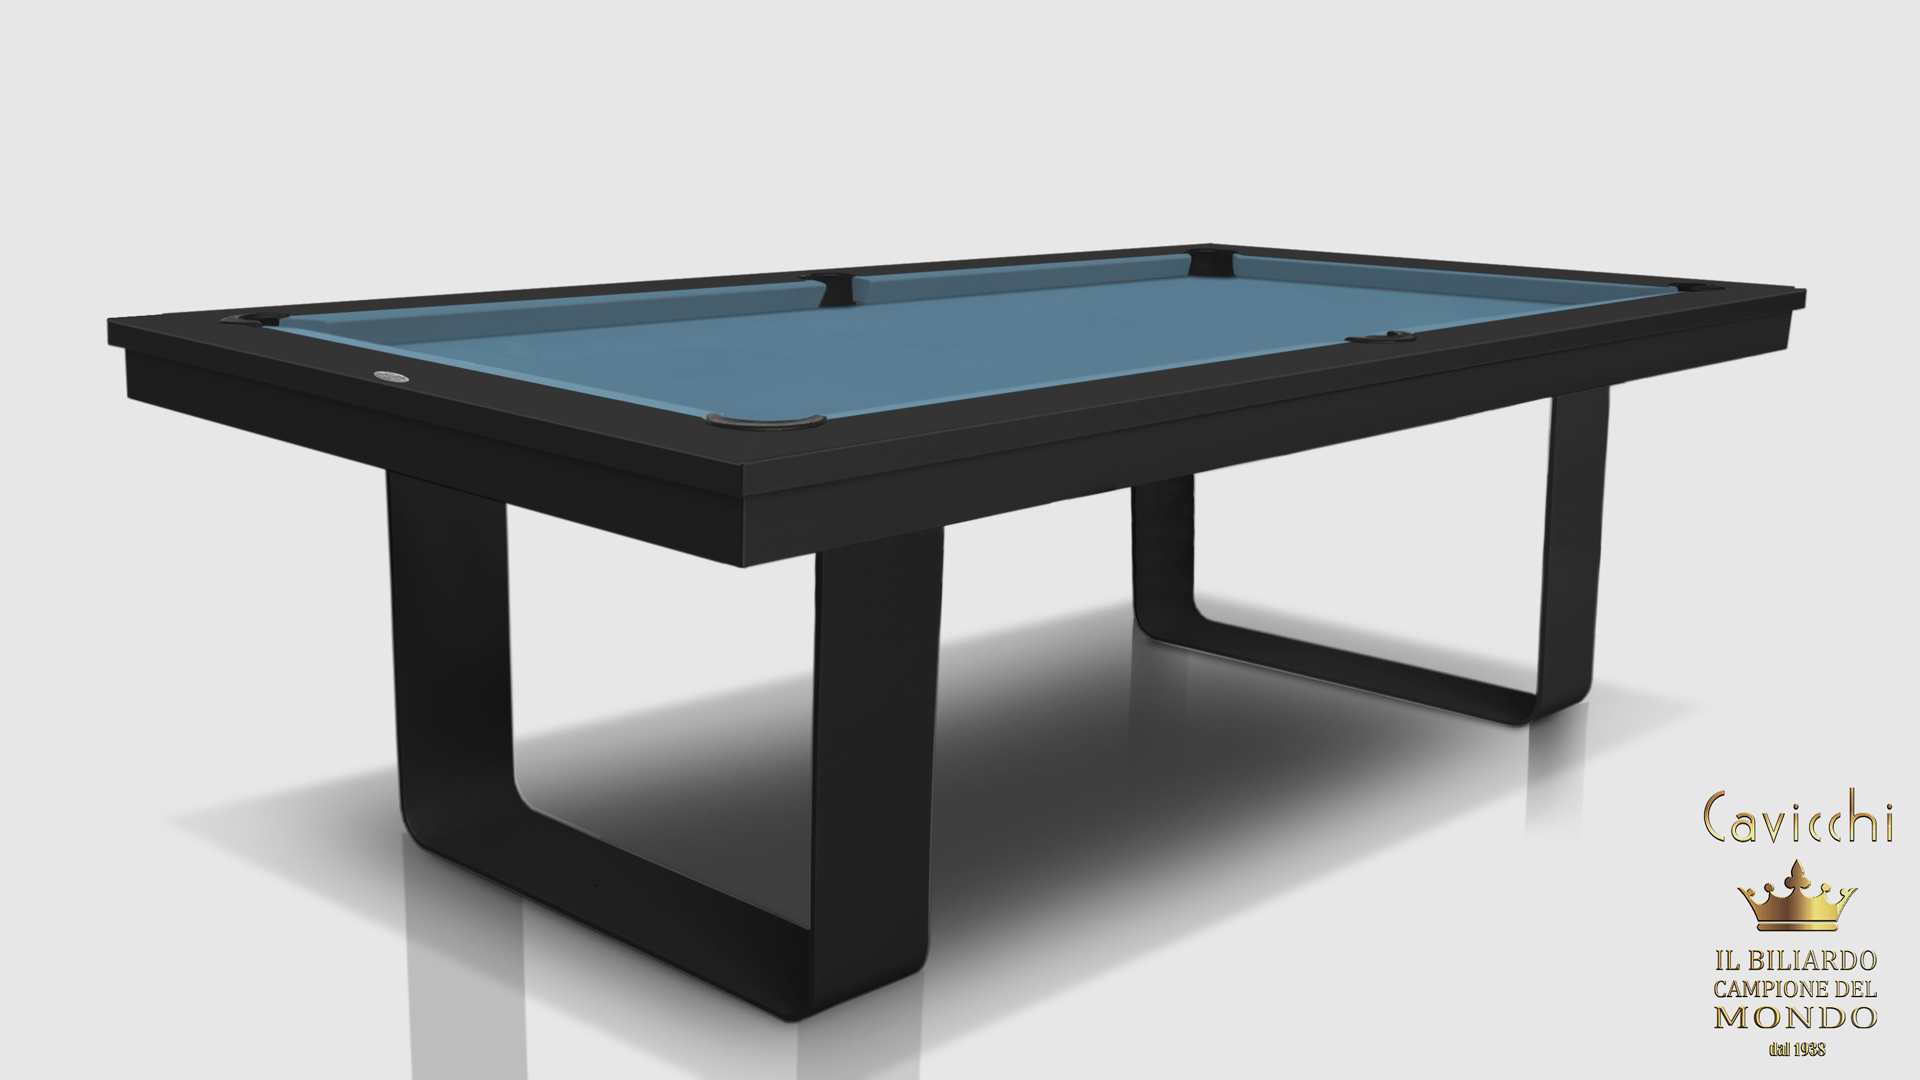 Cavicchi Mistral Black Pool Table 12